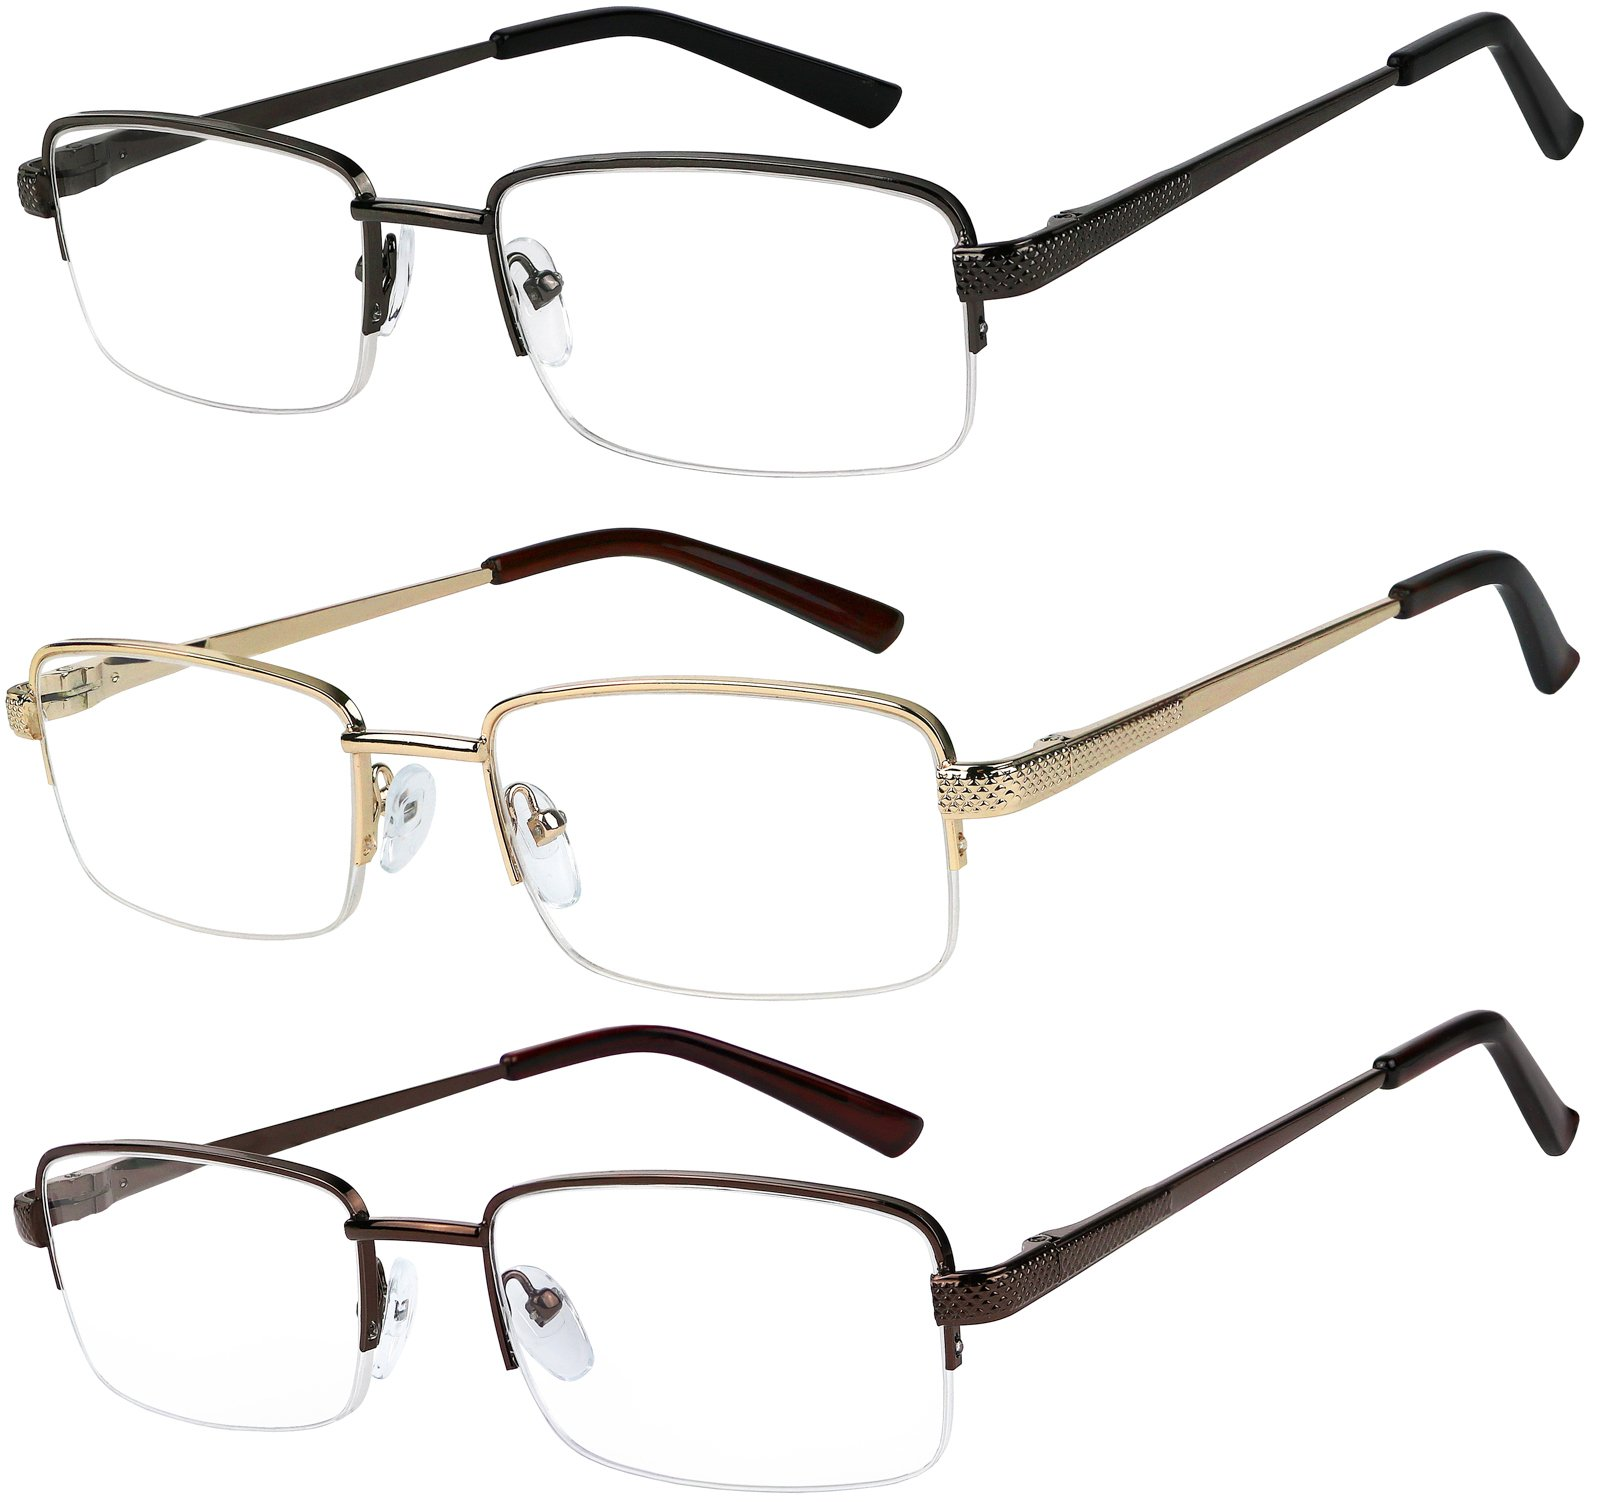 Reading Glasses Set of 3 Half Rim Metal Glasses for Reading Quality Spring Hinge Readers Men and Women +2 by Success Eyewear